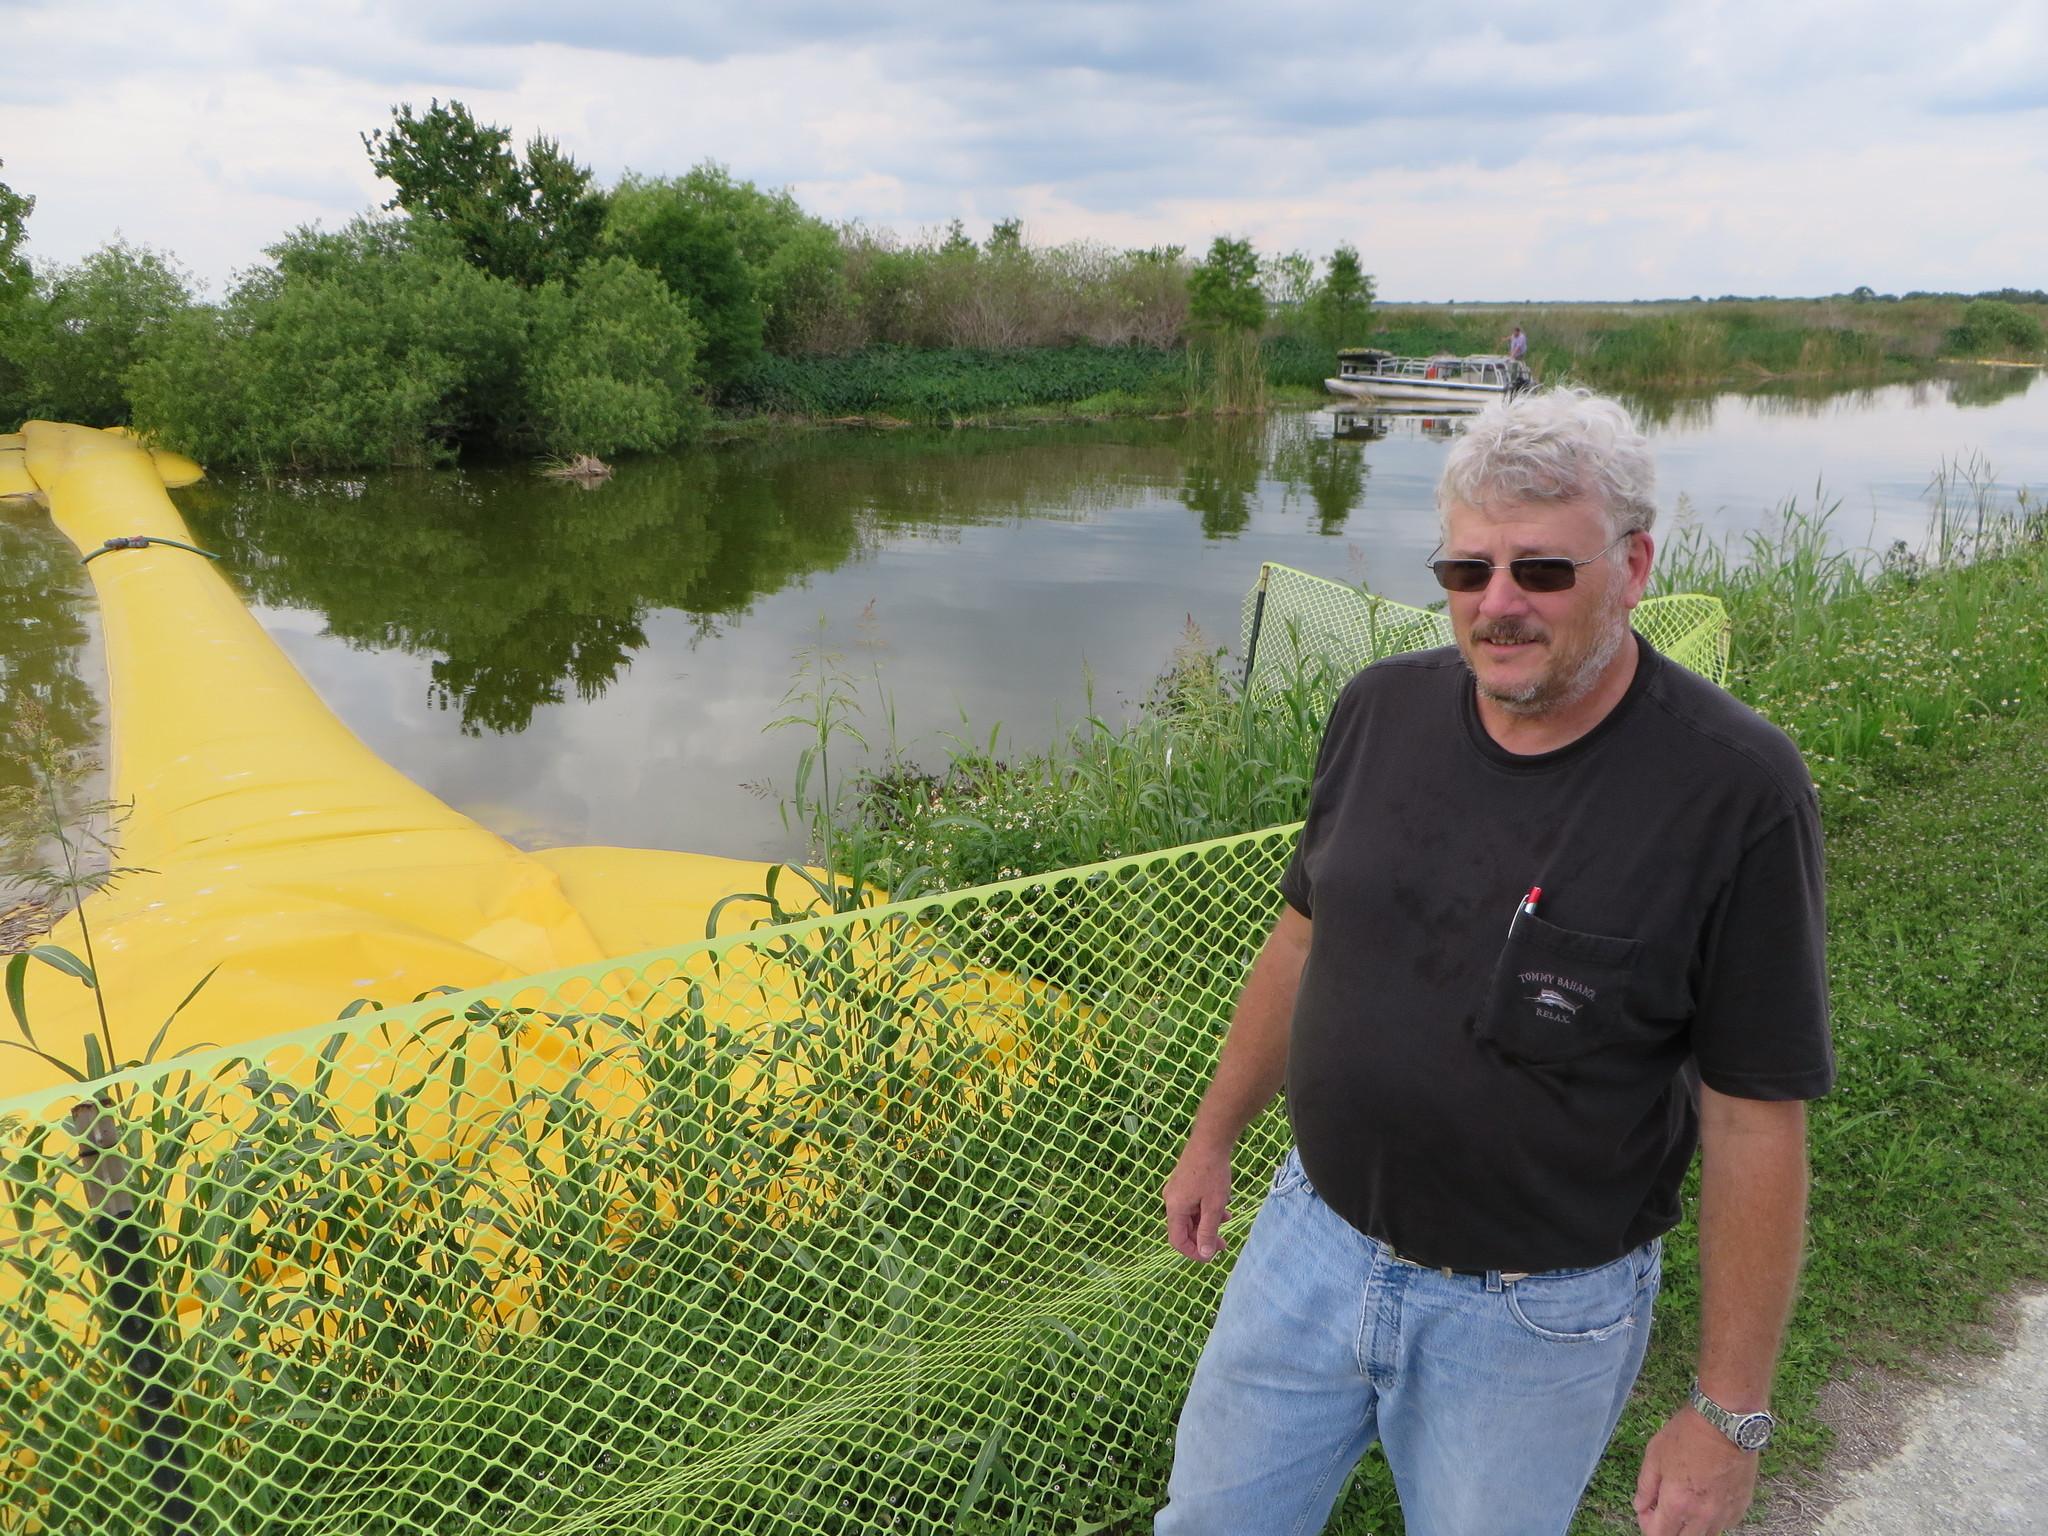 experts look beyond silver bullet cure for lake apopka u0027s woes